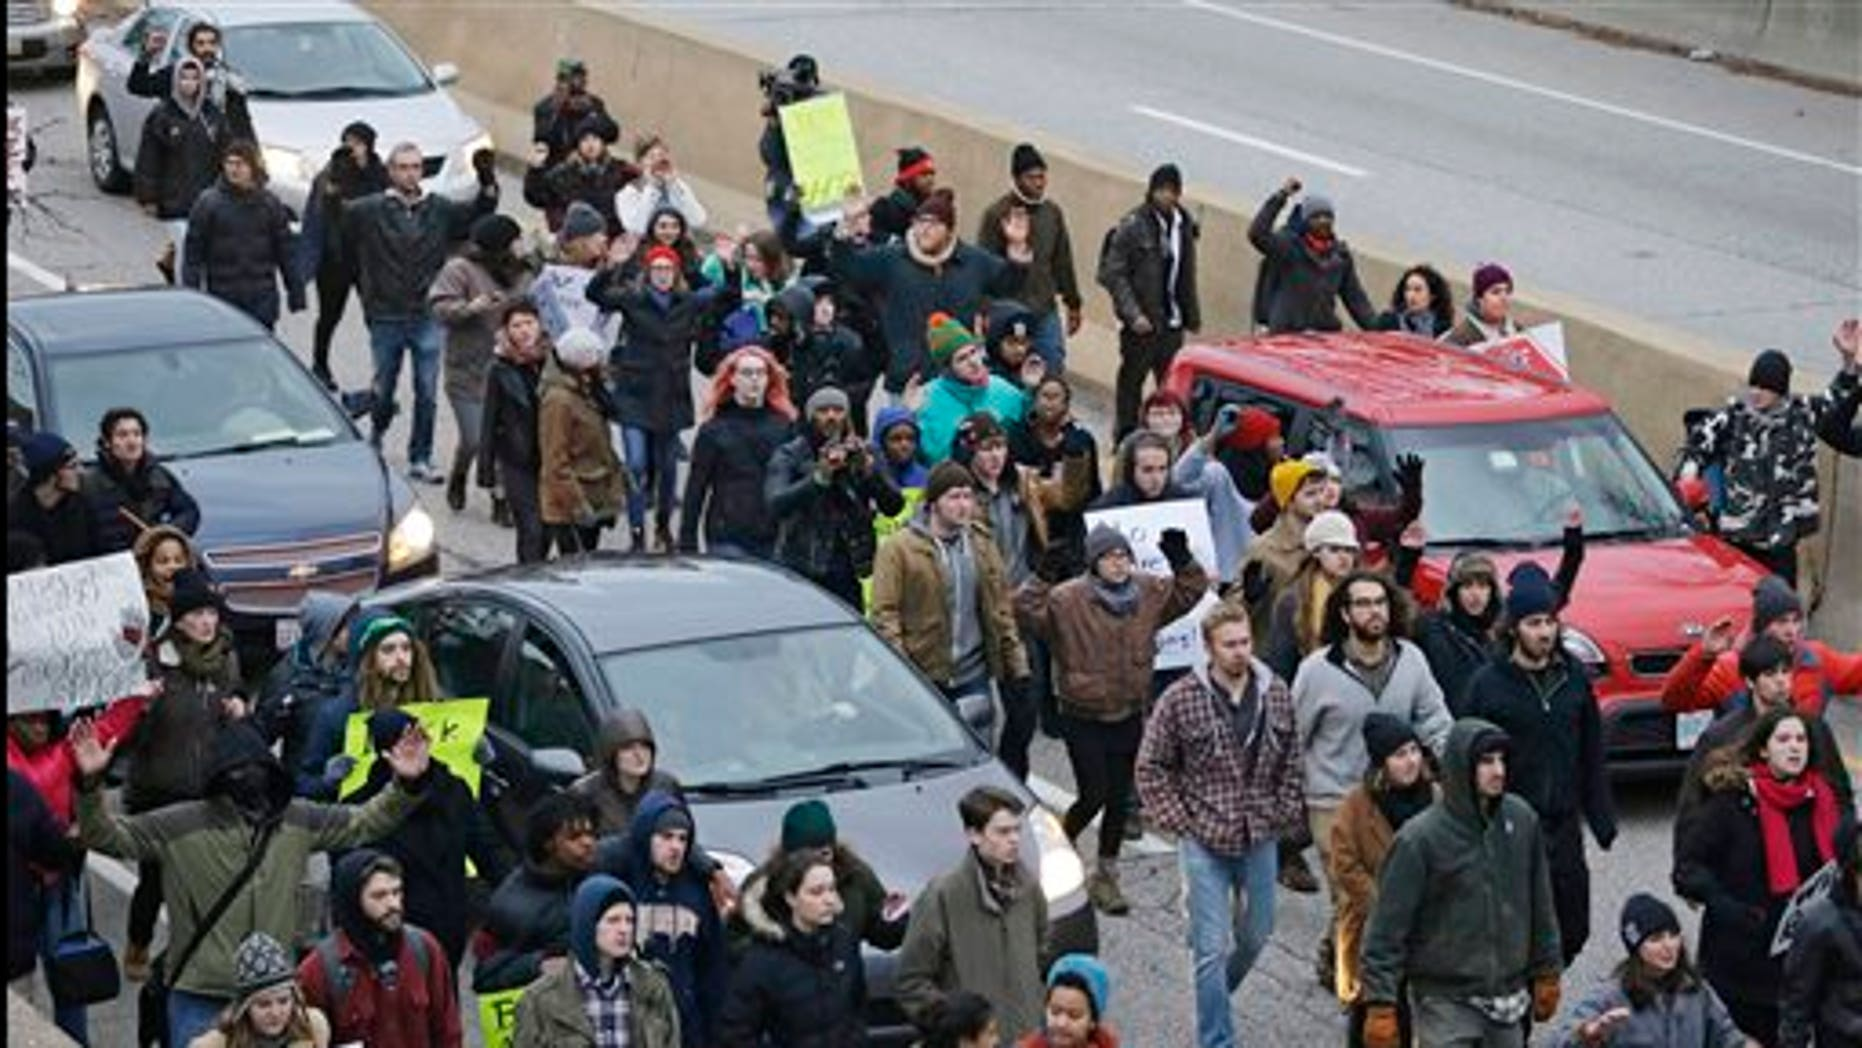 In this Nov. 25, 2014, photo, protesters block cars on the freeway during a protest over the police shooting of Tamir Rice in Cleveland. (AP Photo/Tony Dejak, File)